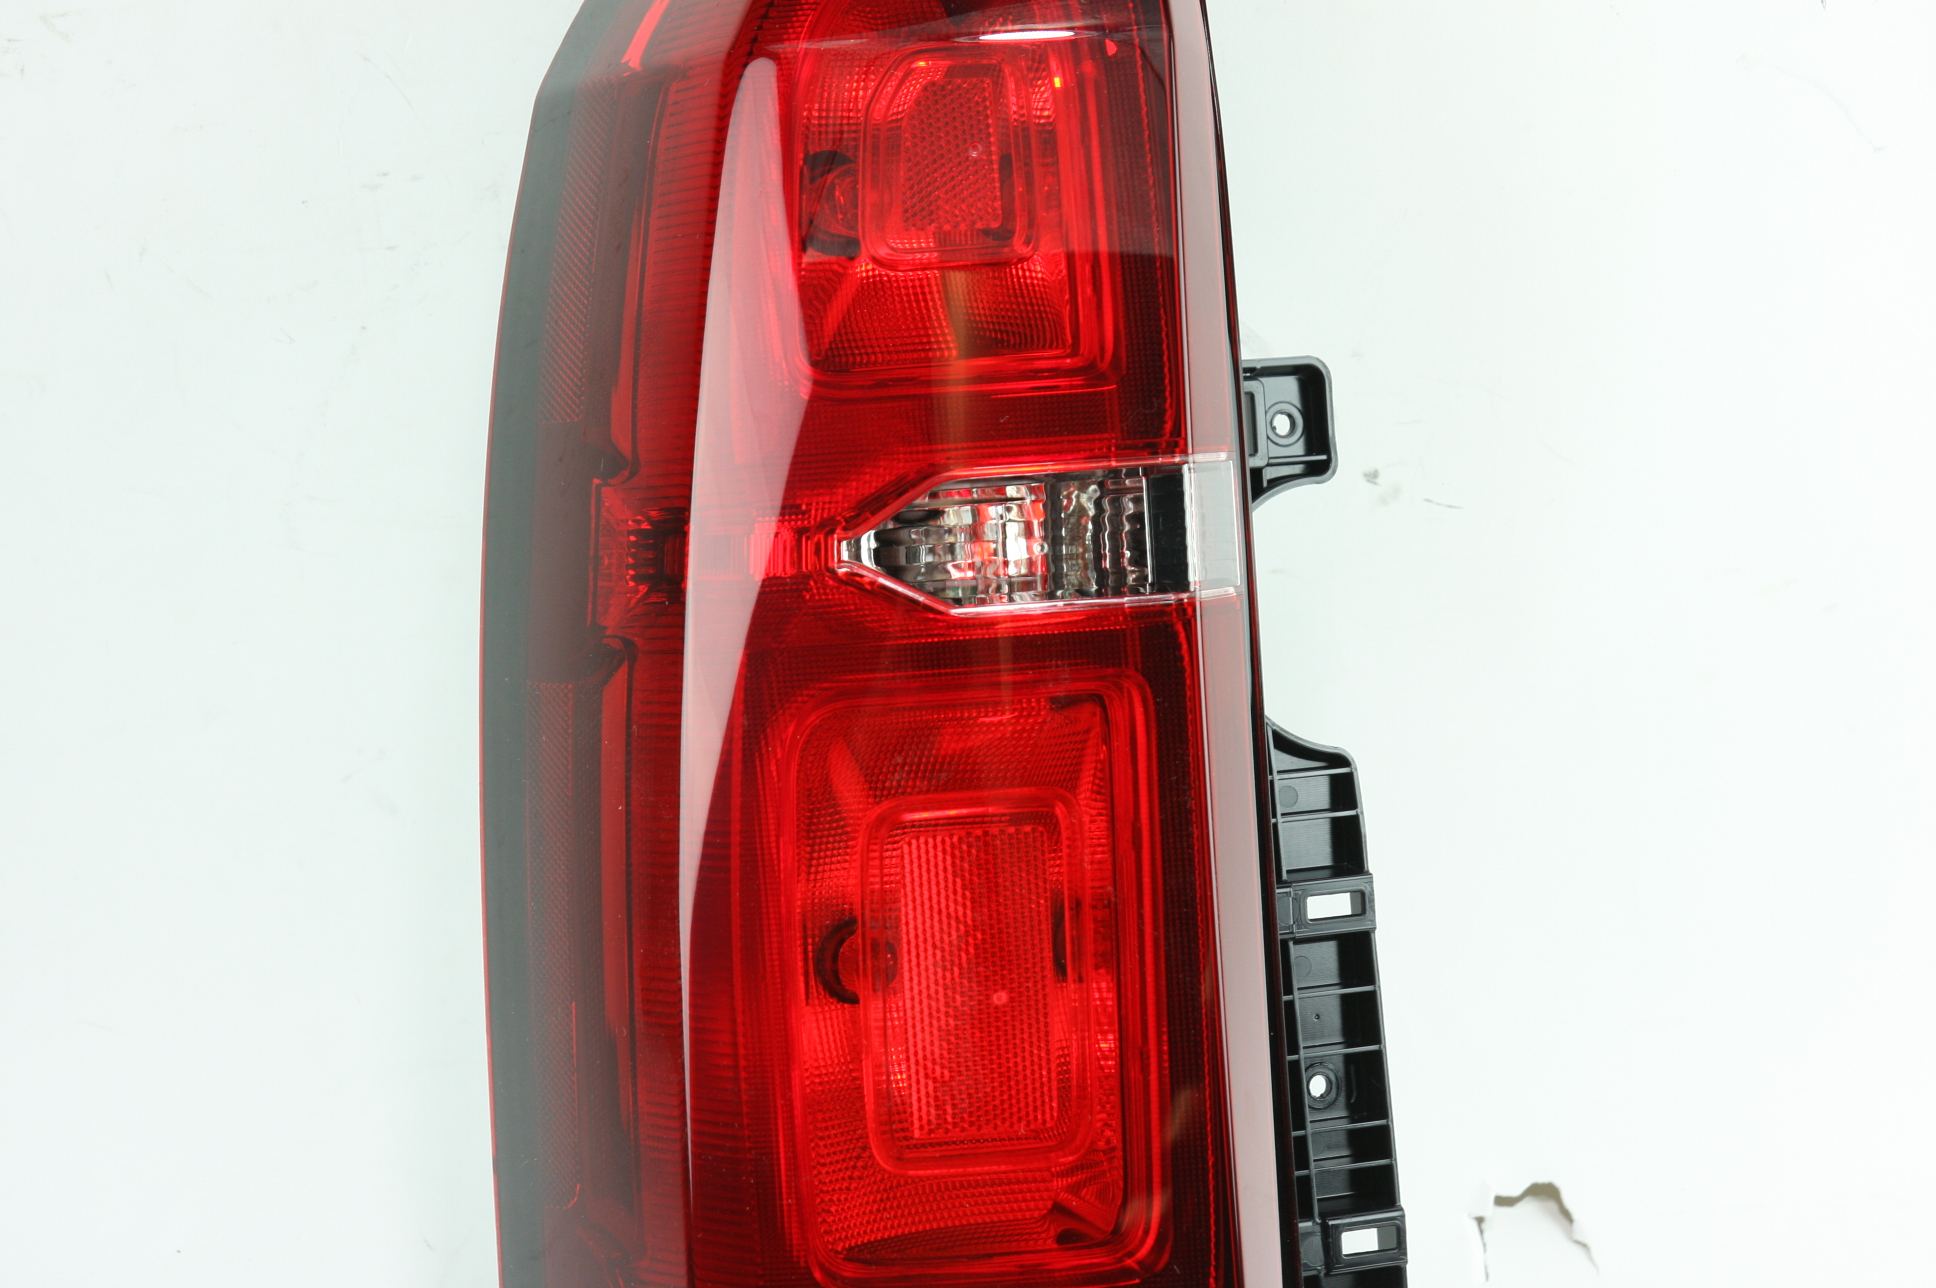 New Genuine OEM 23407432 GM Left Tail Lamp 15-19 Chevy Tahoe & Suburban NIP - image 4